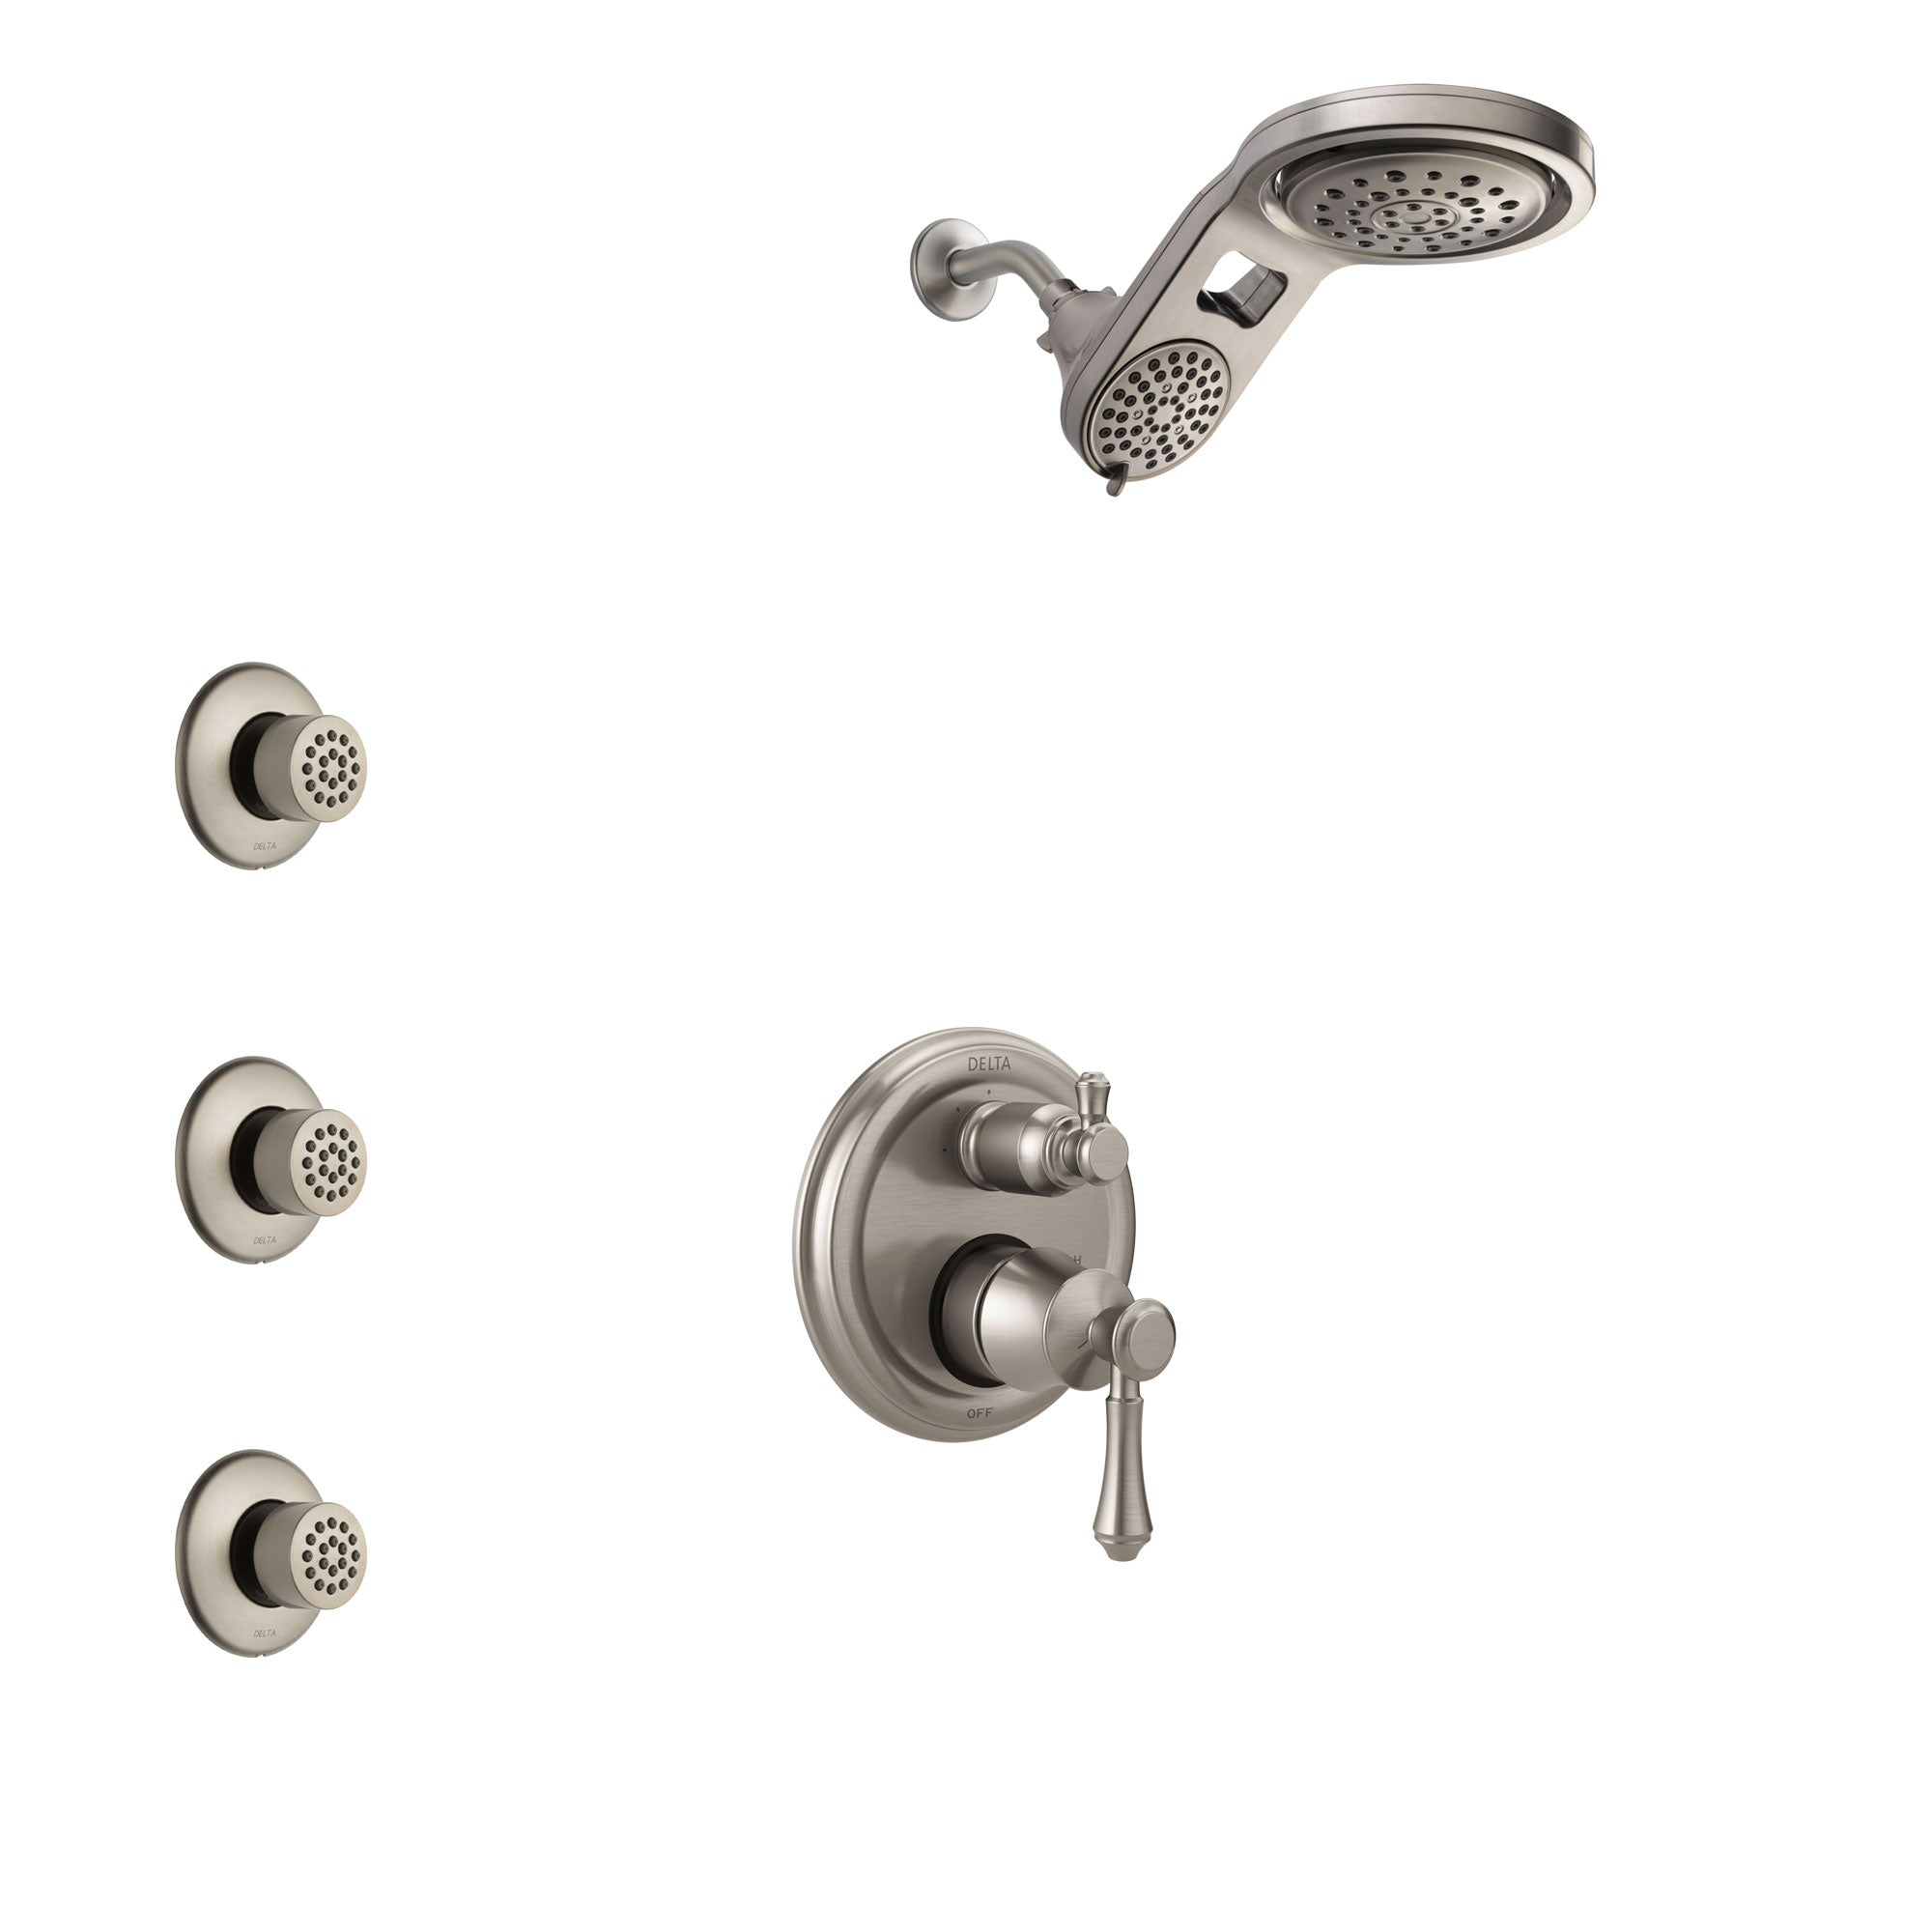 Delta Cassidy Stainless Steel Finish Shower System with Control Handle, Integrated 3-Setting Diverter, Dual Showerhead, and 3 Body Sprays SS24897SS4